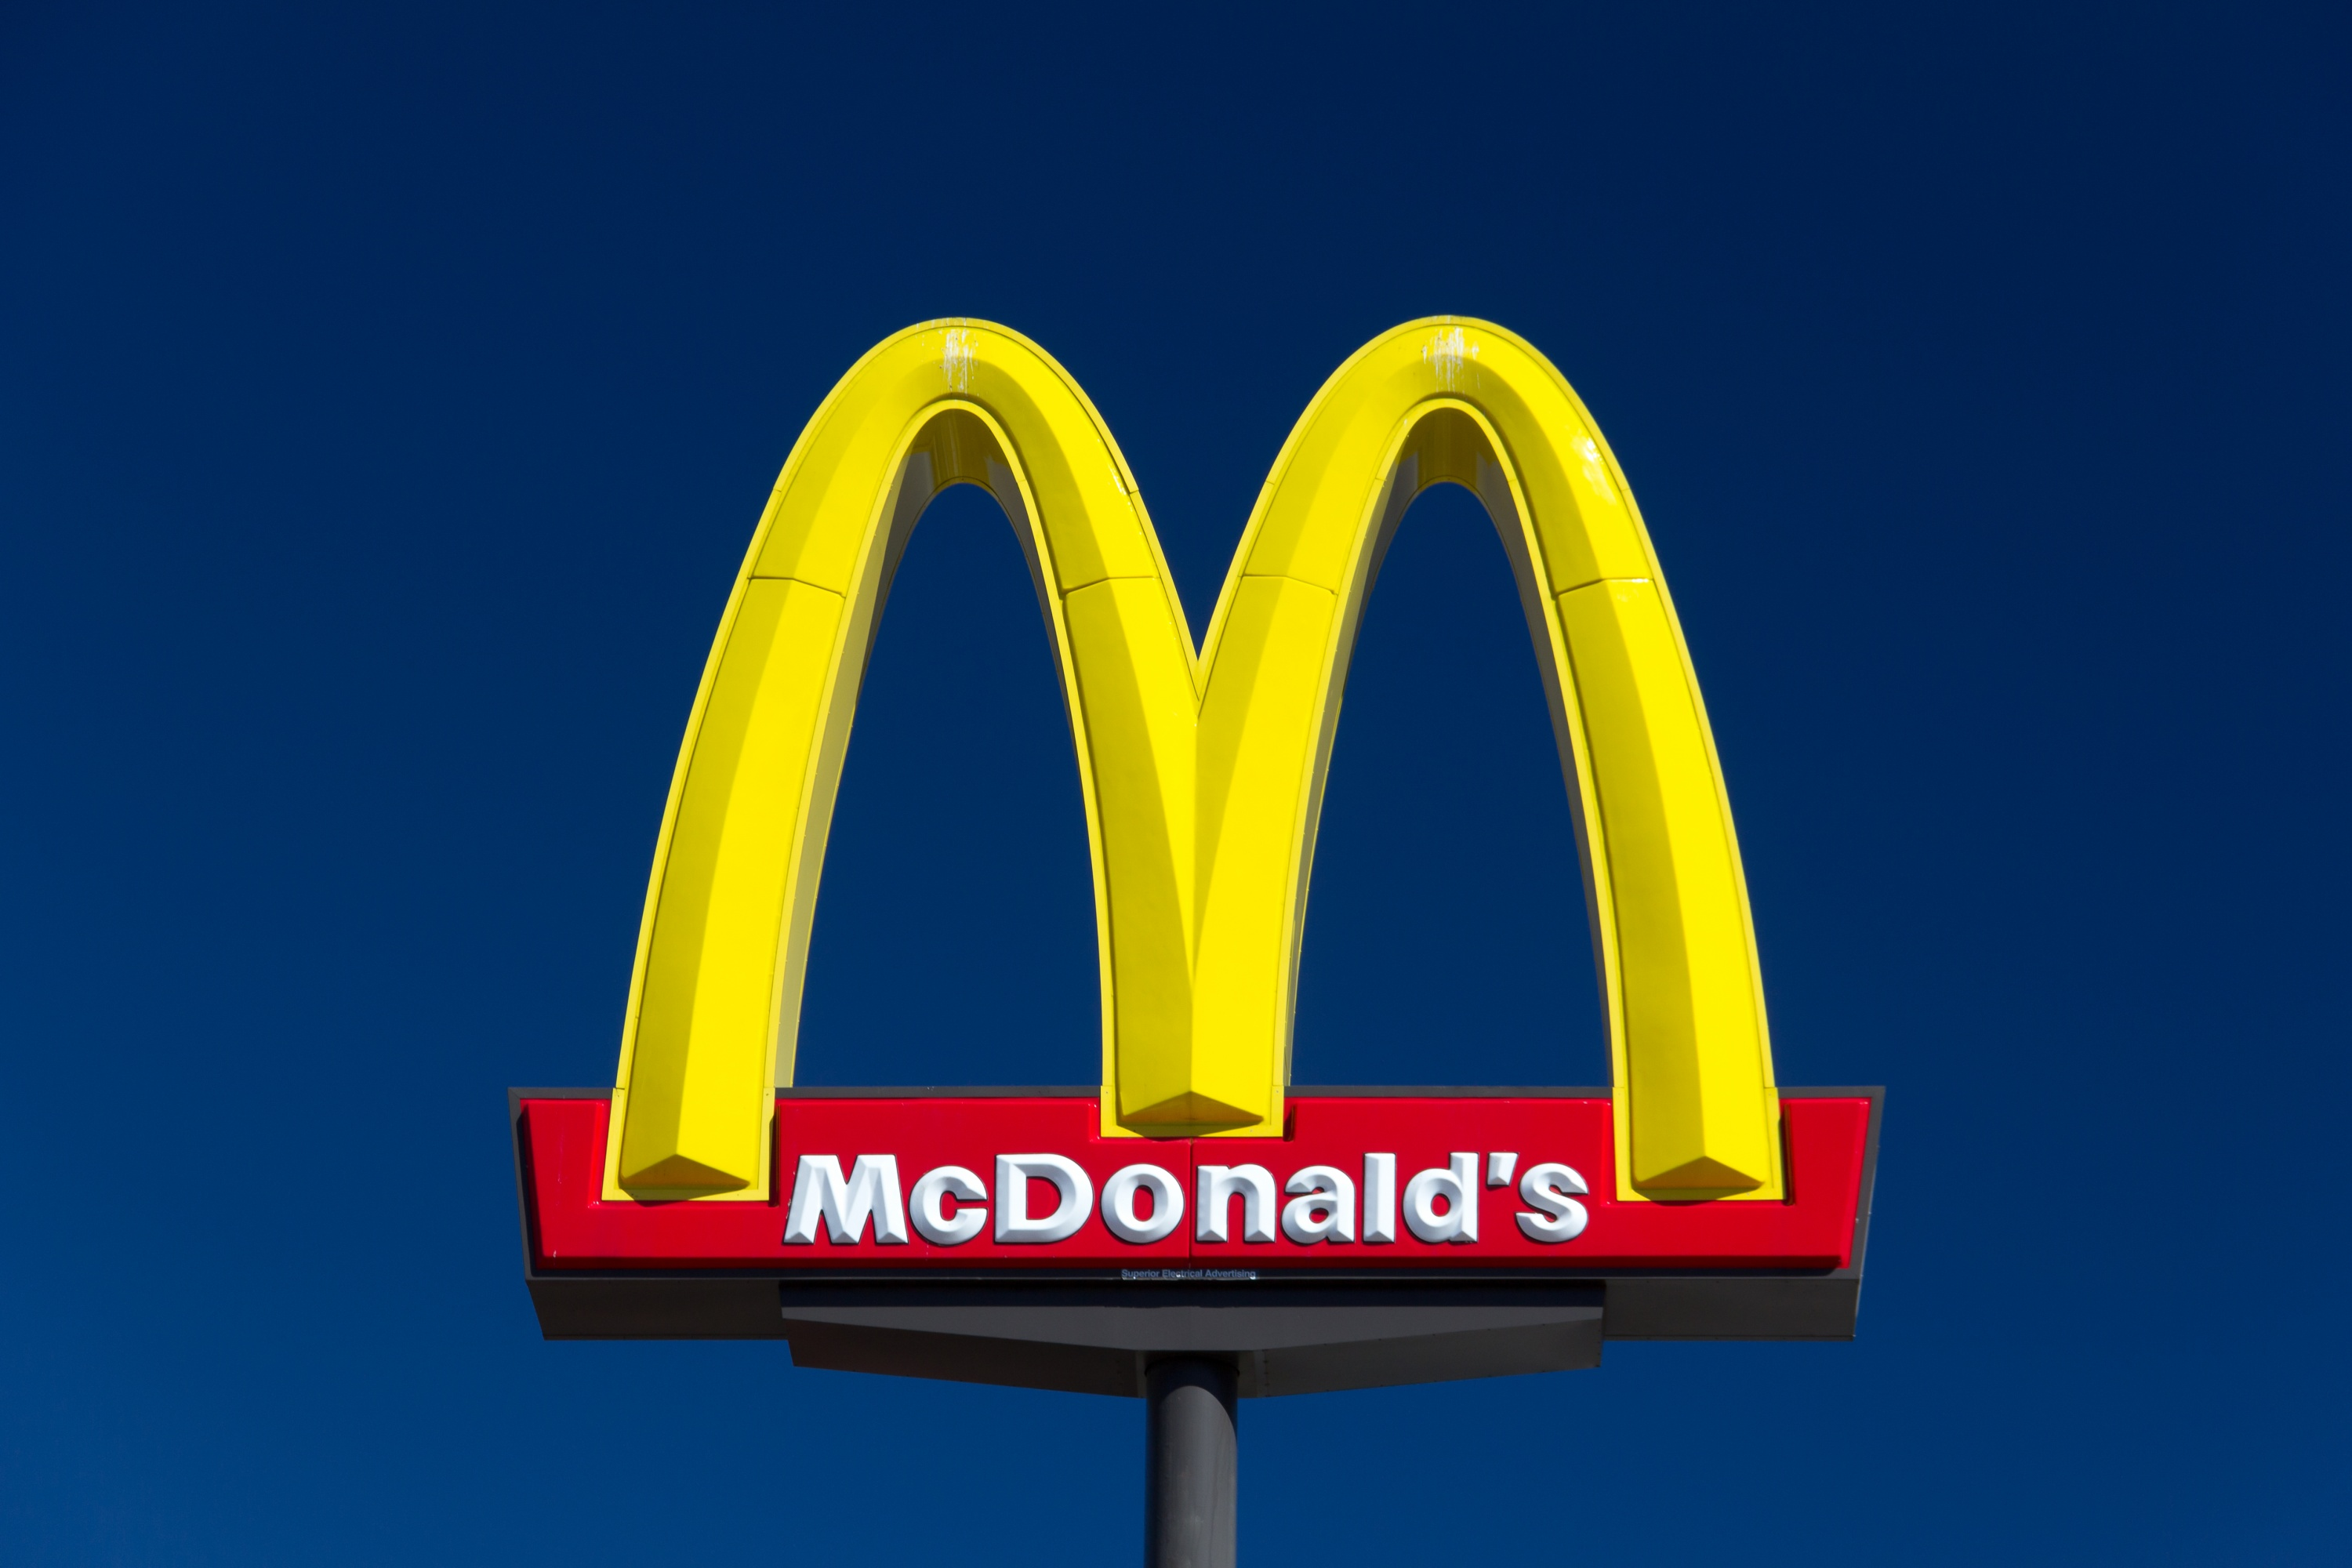 bigstock-Large-Mcdonald-s-Sign-69636400.jpg